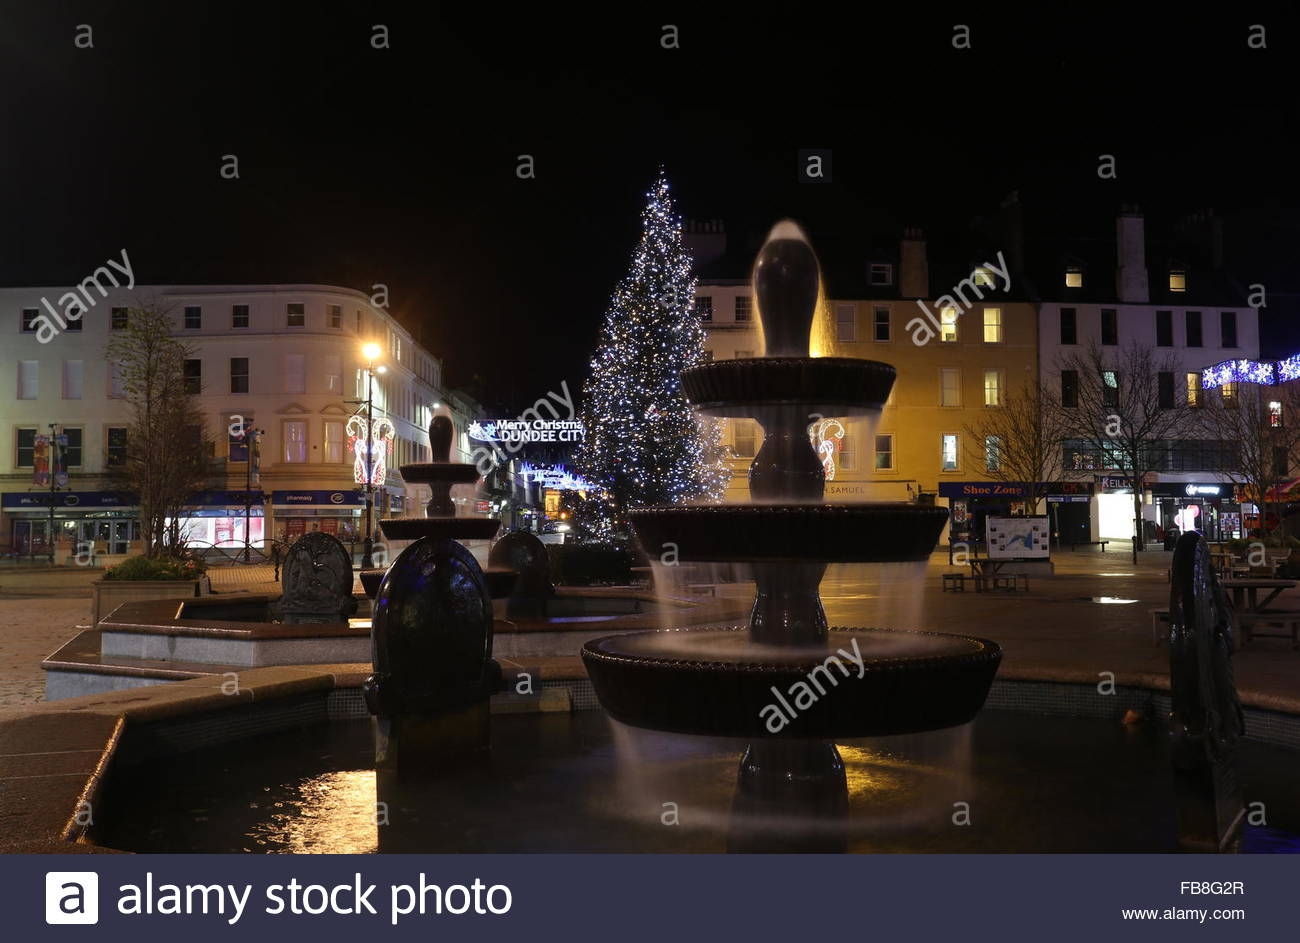 Fountain and Christmas tree City Square Dundee Scotland  December 2015 - Stock Image